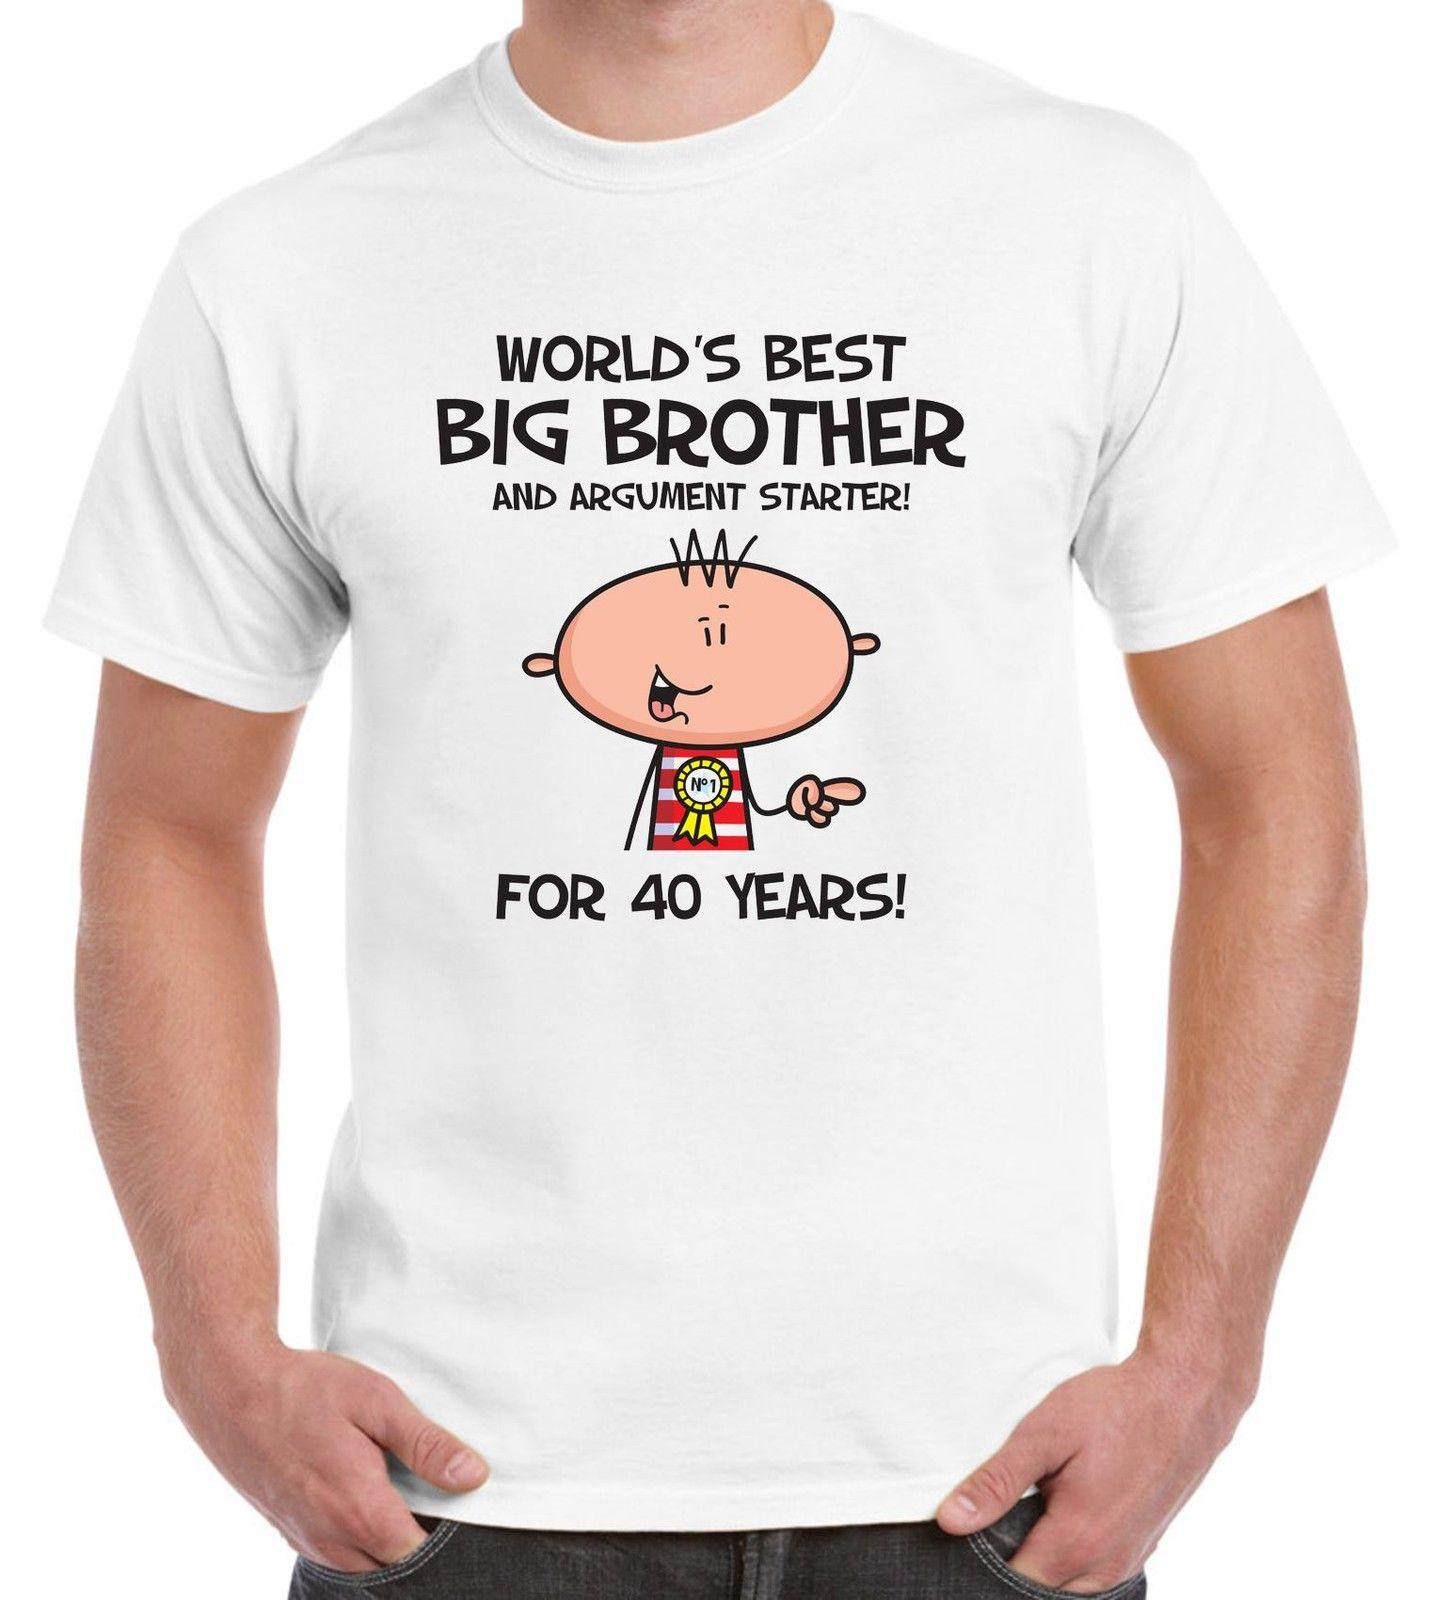 Worlds Best Big Brother MenS 40th Birthday Present T Shirt Gift Style Round Tshirt Funky Designs Awesome From Onefulcup